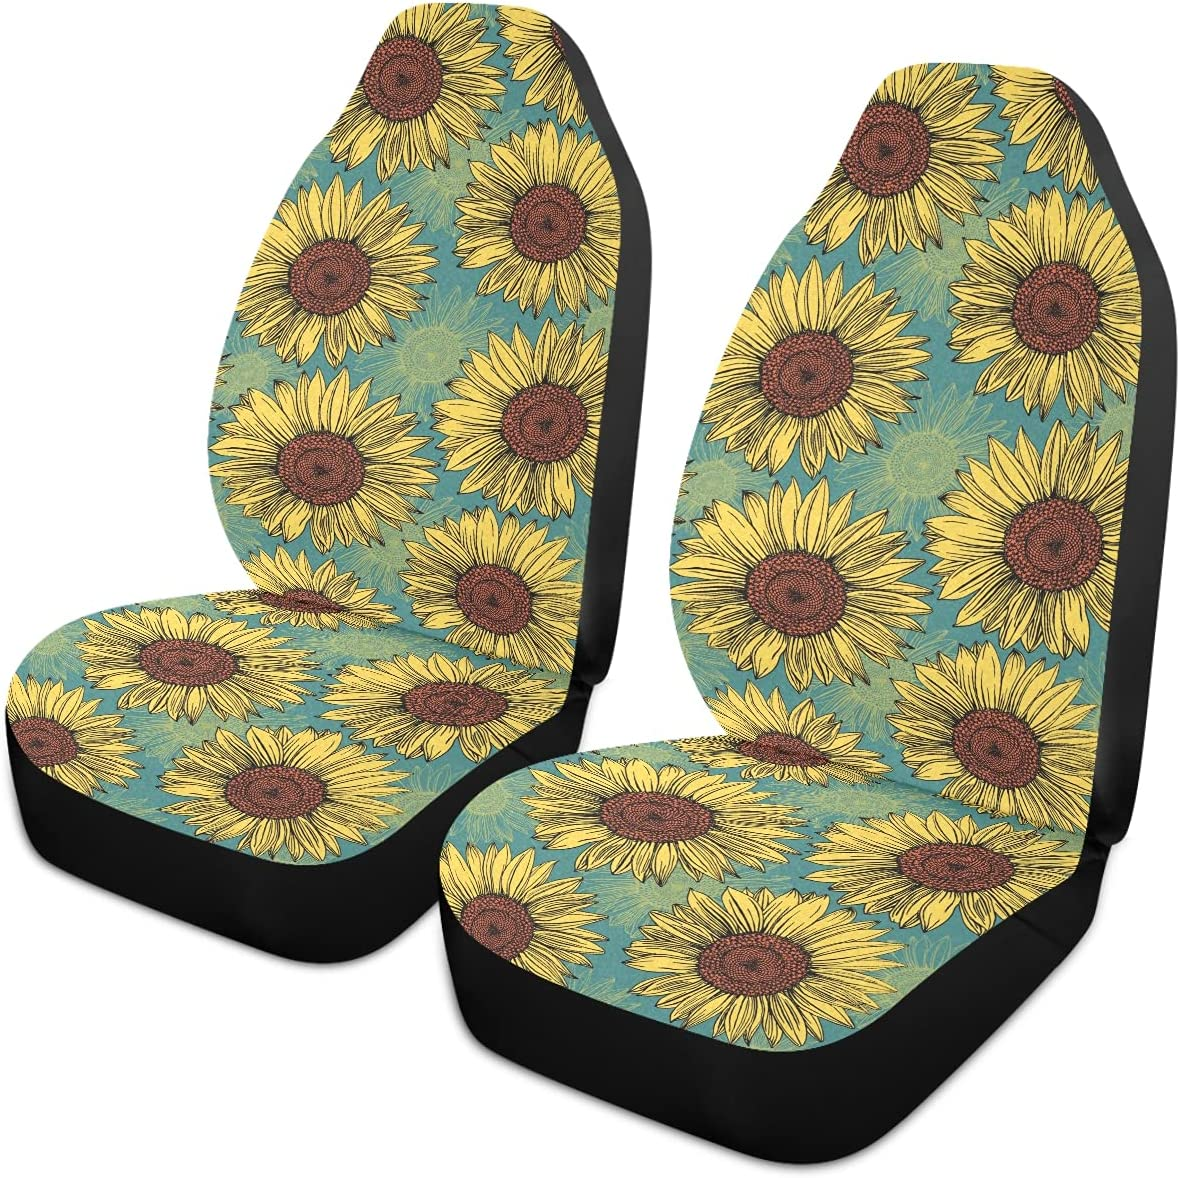 Oarencol Sunflower Car Seat 2021new shipping free Covers Over item handling Vintage Uni Blue Teal Florals